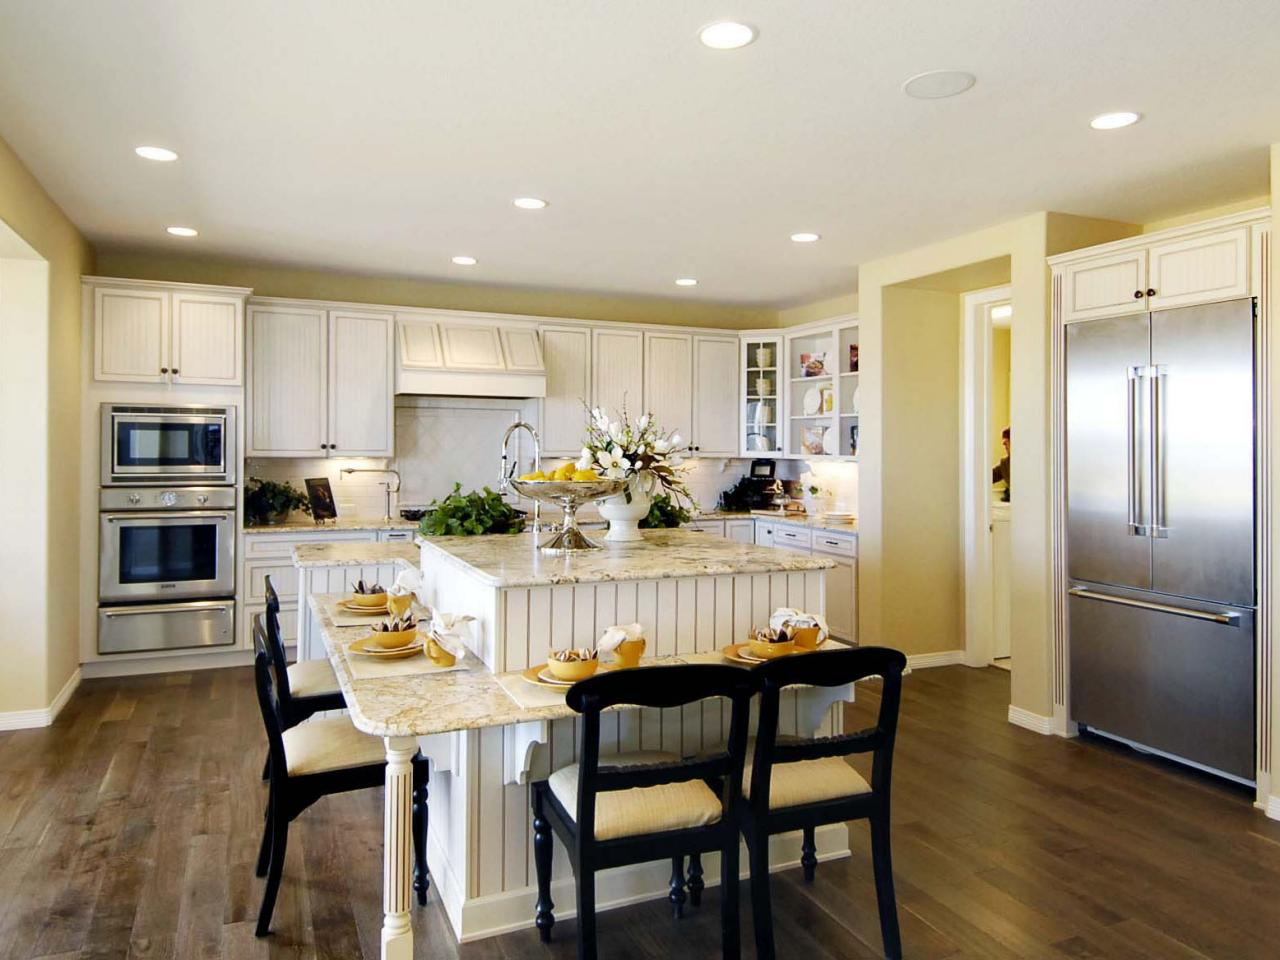 Gallery Of Kitchen Design Ideas For Small Spaces 30 Modern Kitchen ...